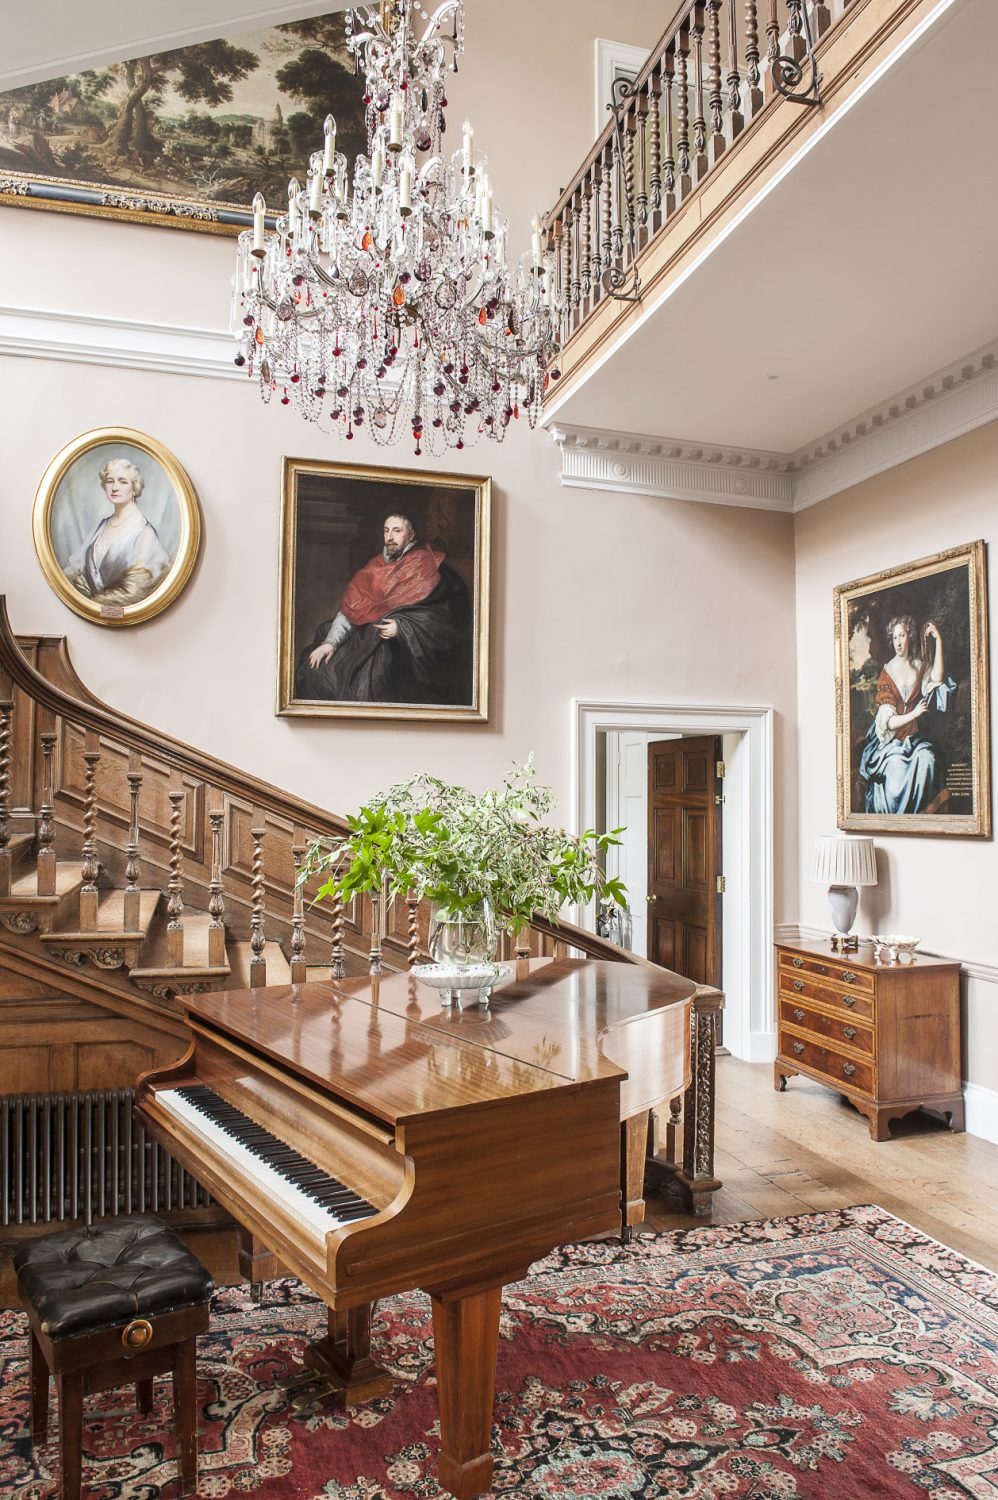 Julian's mother's piano sits at the bottom of the glorious main staircase, which is lined with ancestral portraits. Lord and Lady FitzWalter found the magnificent chandelier with multi-coloured drops in a 'shed' in Essex